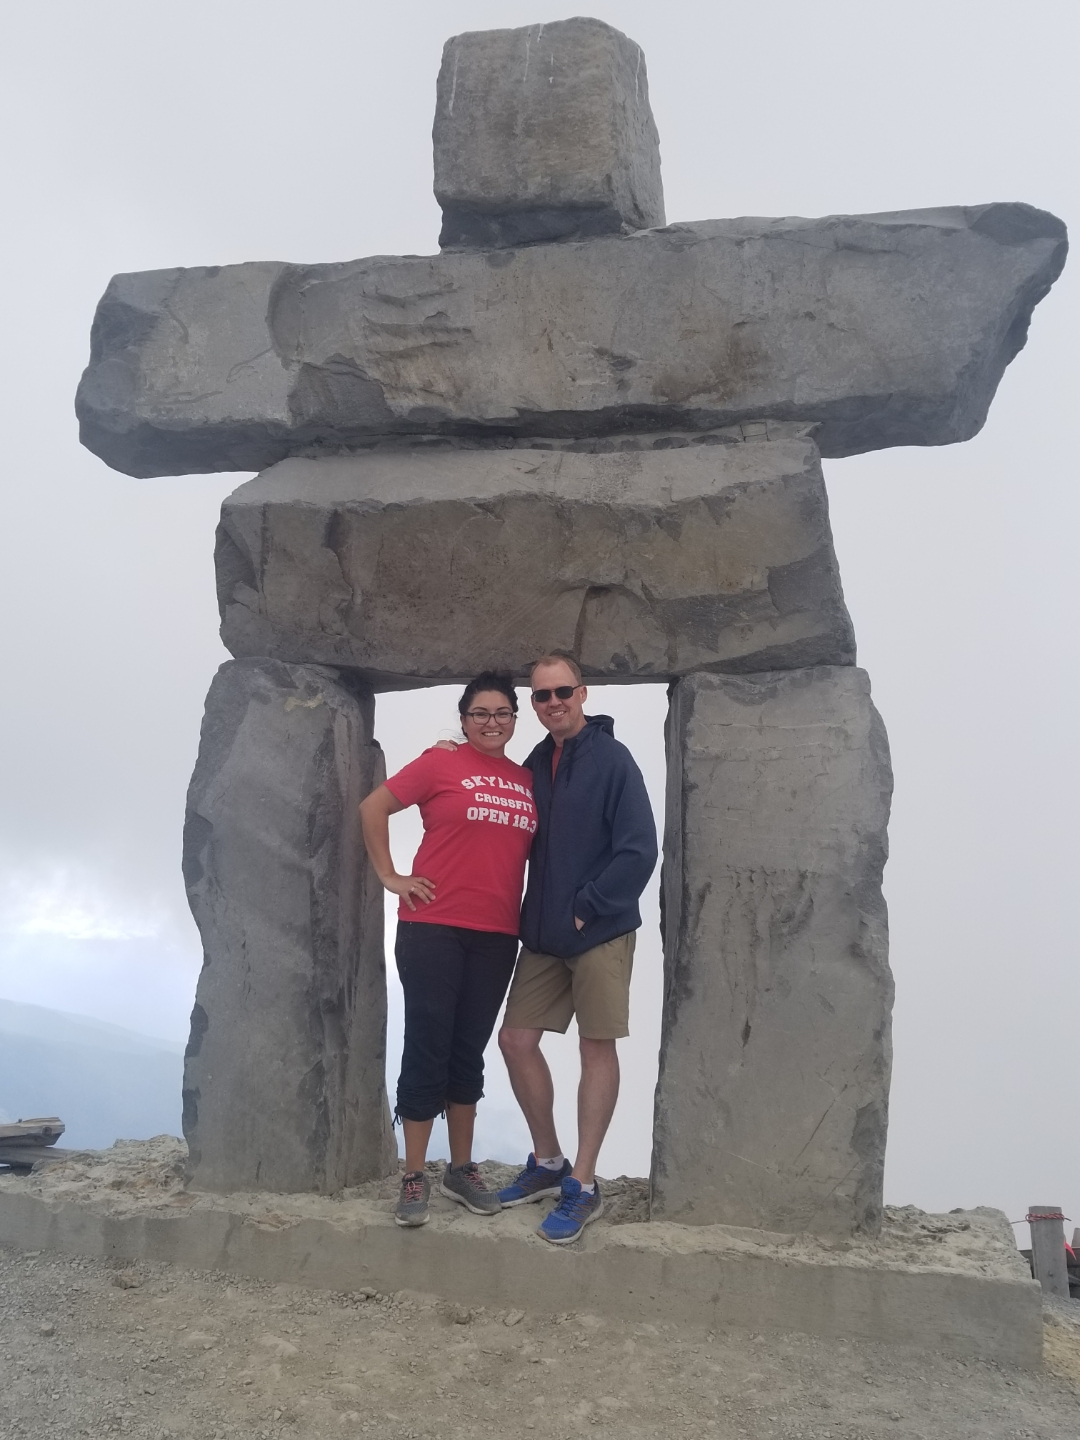 Angie Turner who has also lost weight since signing up with Skyline is enjoying herself with husband in hand all the way up in Whistler, BC, Canada.